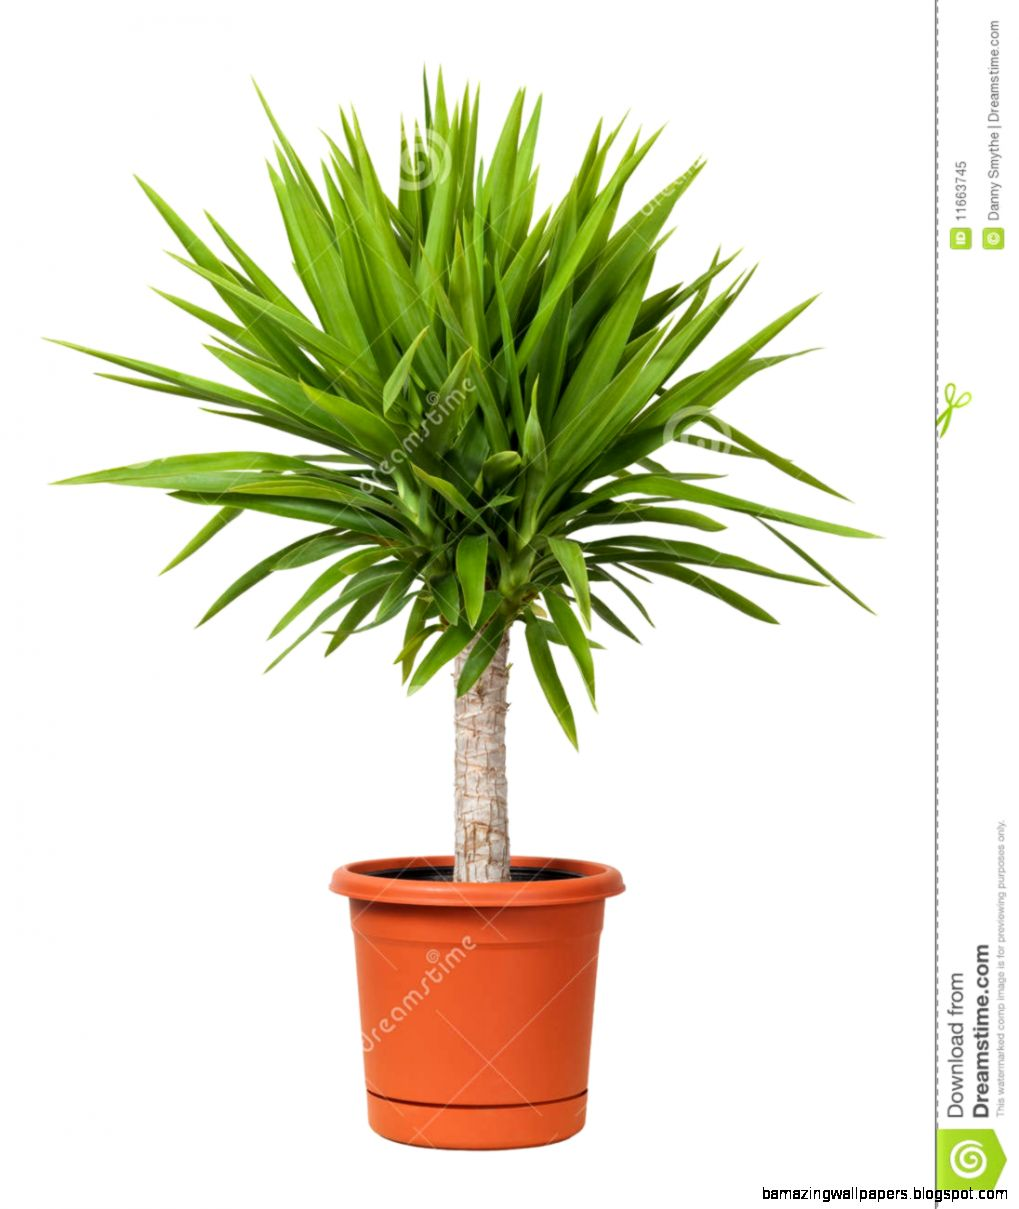 Yucca Potted Plant Isolated Royalty Free Stock Photo   Image 11663745